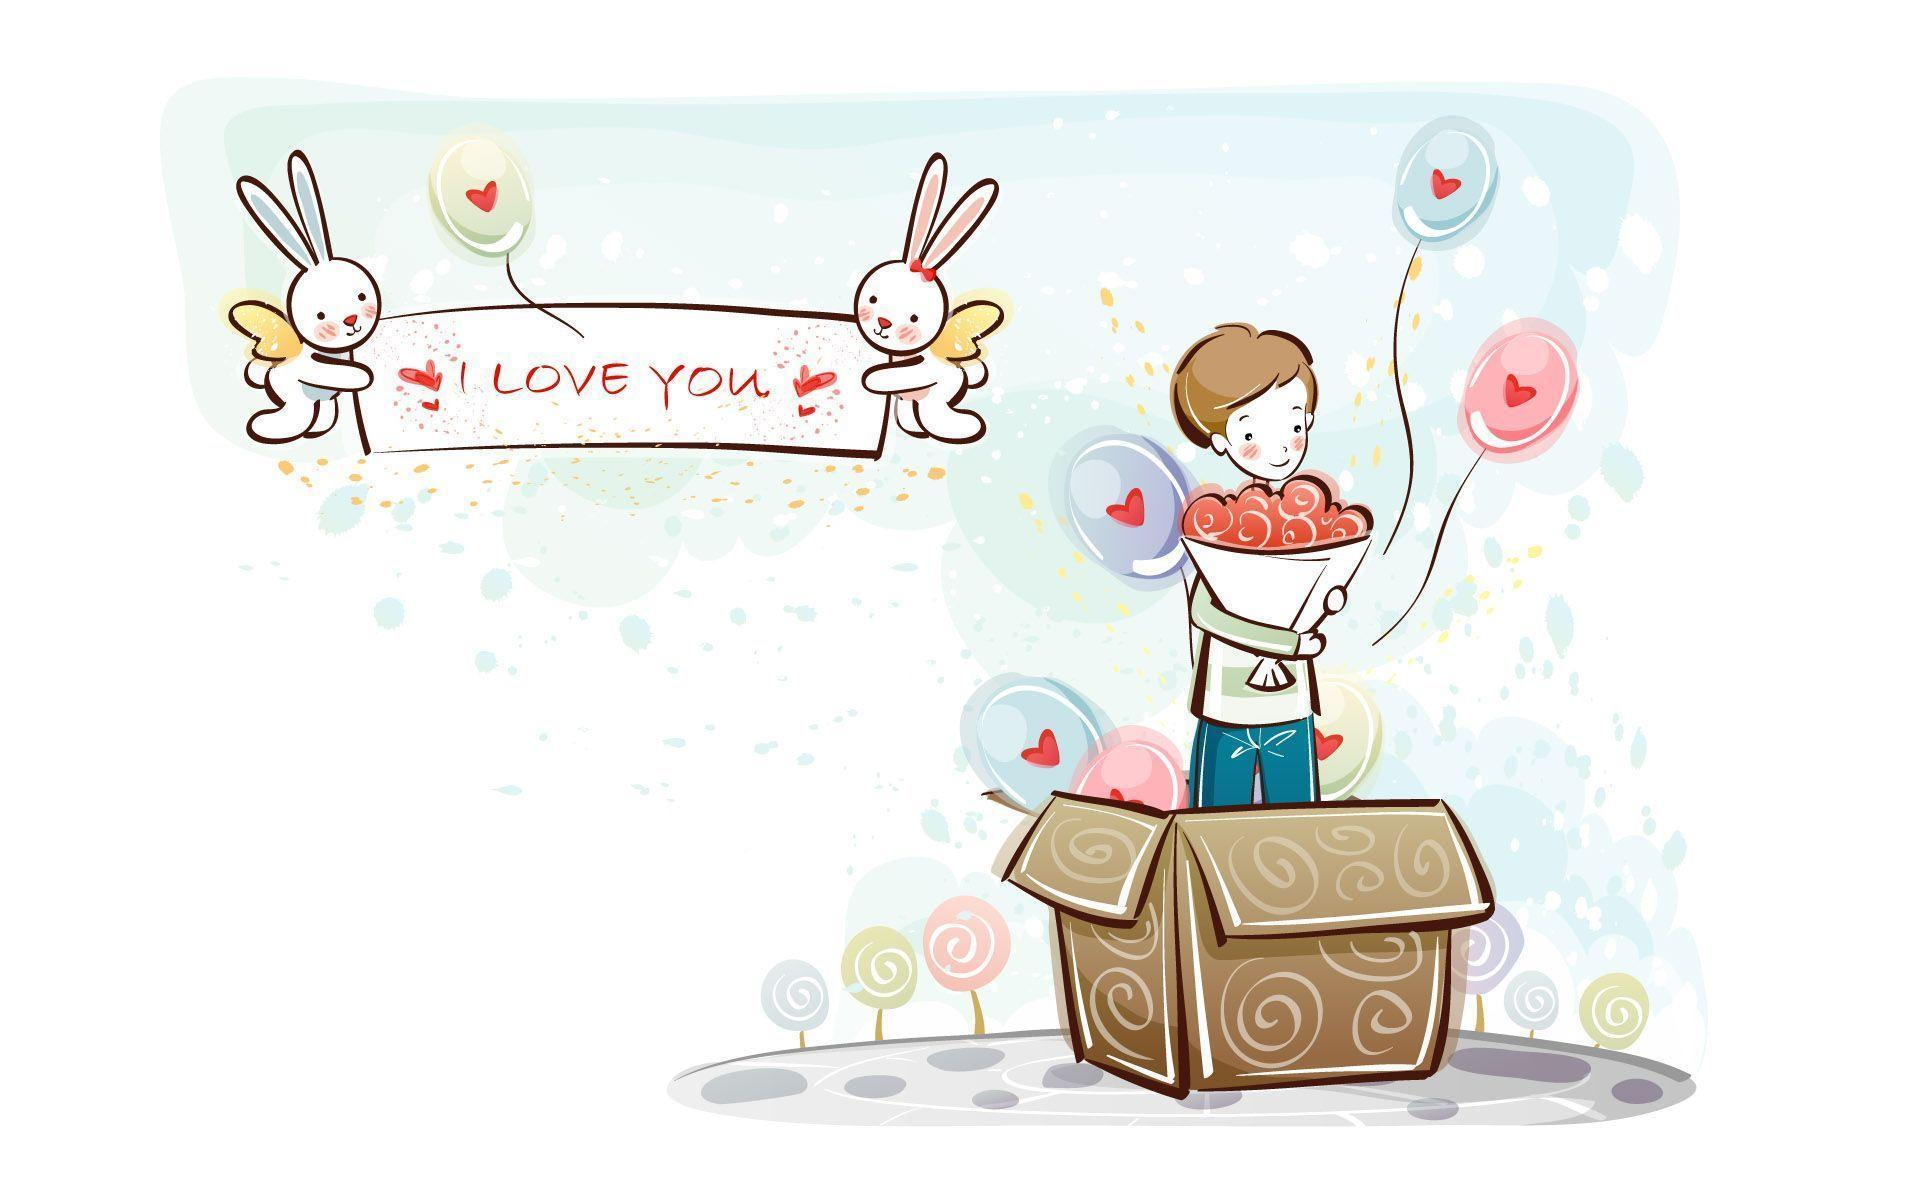 Wallpaper Of cute Love cartoon : Image Gallery love couple cartoon wallpaper